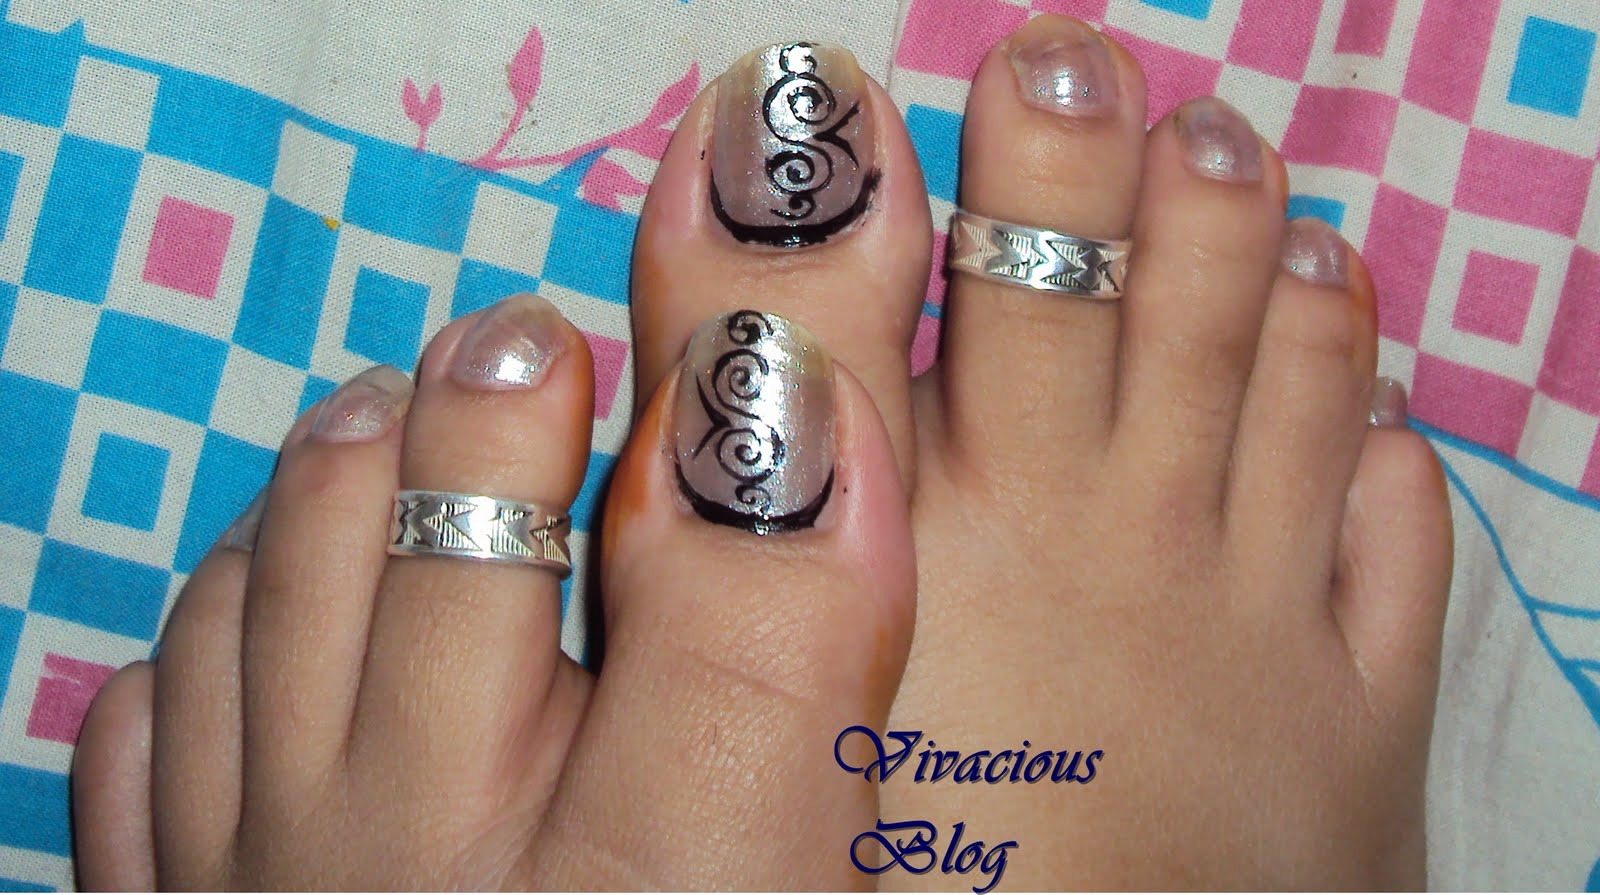 Vivacious Blog: Toe Nail Art